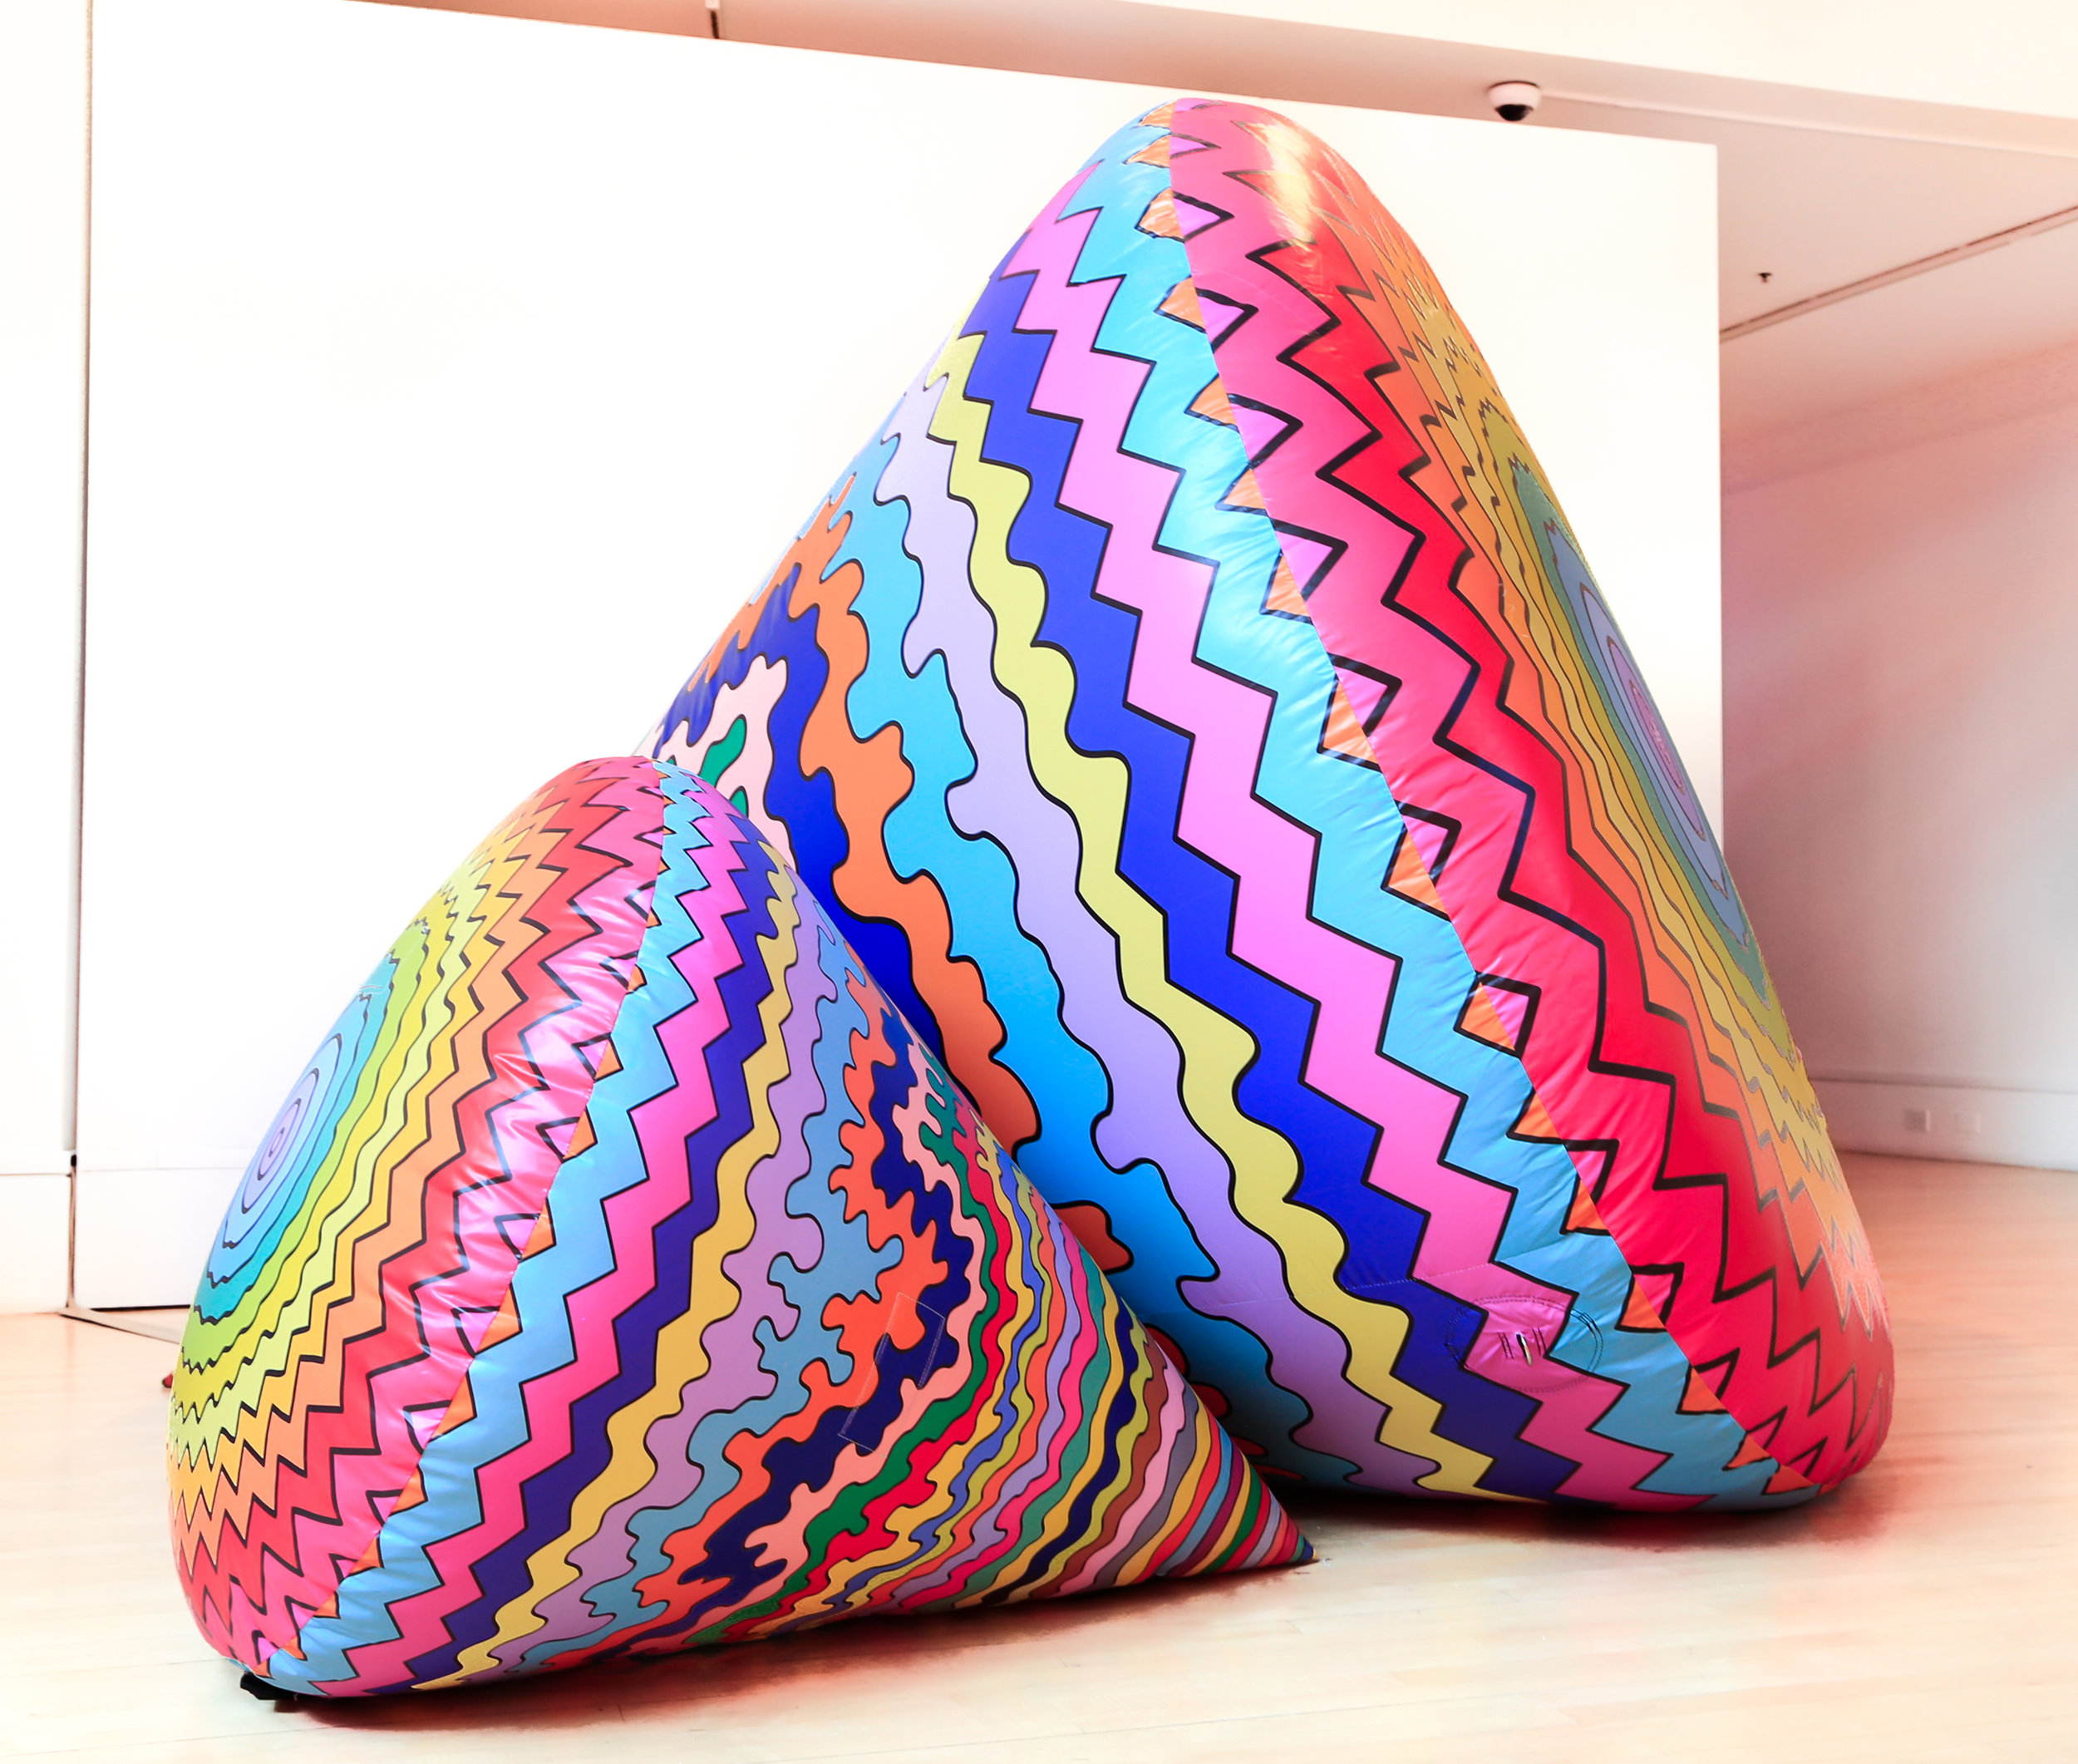 Inflatable Cone #2 (smaller cone), 2019, inflated nylon, 39 x 48x 58 in.